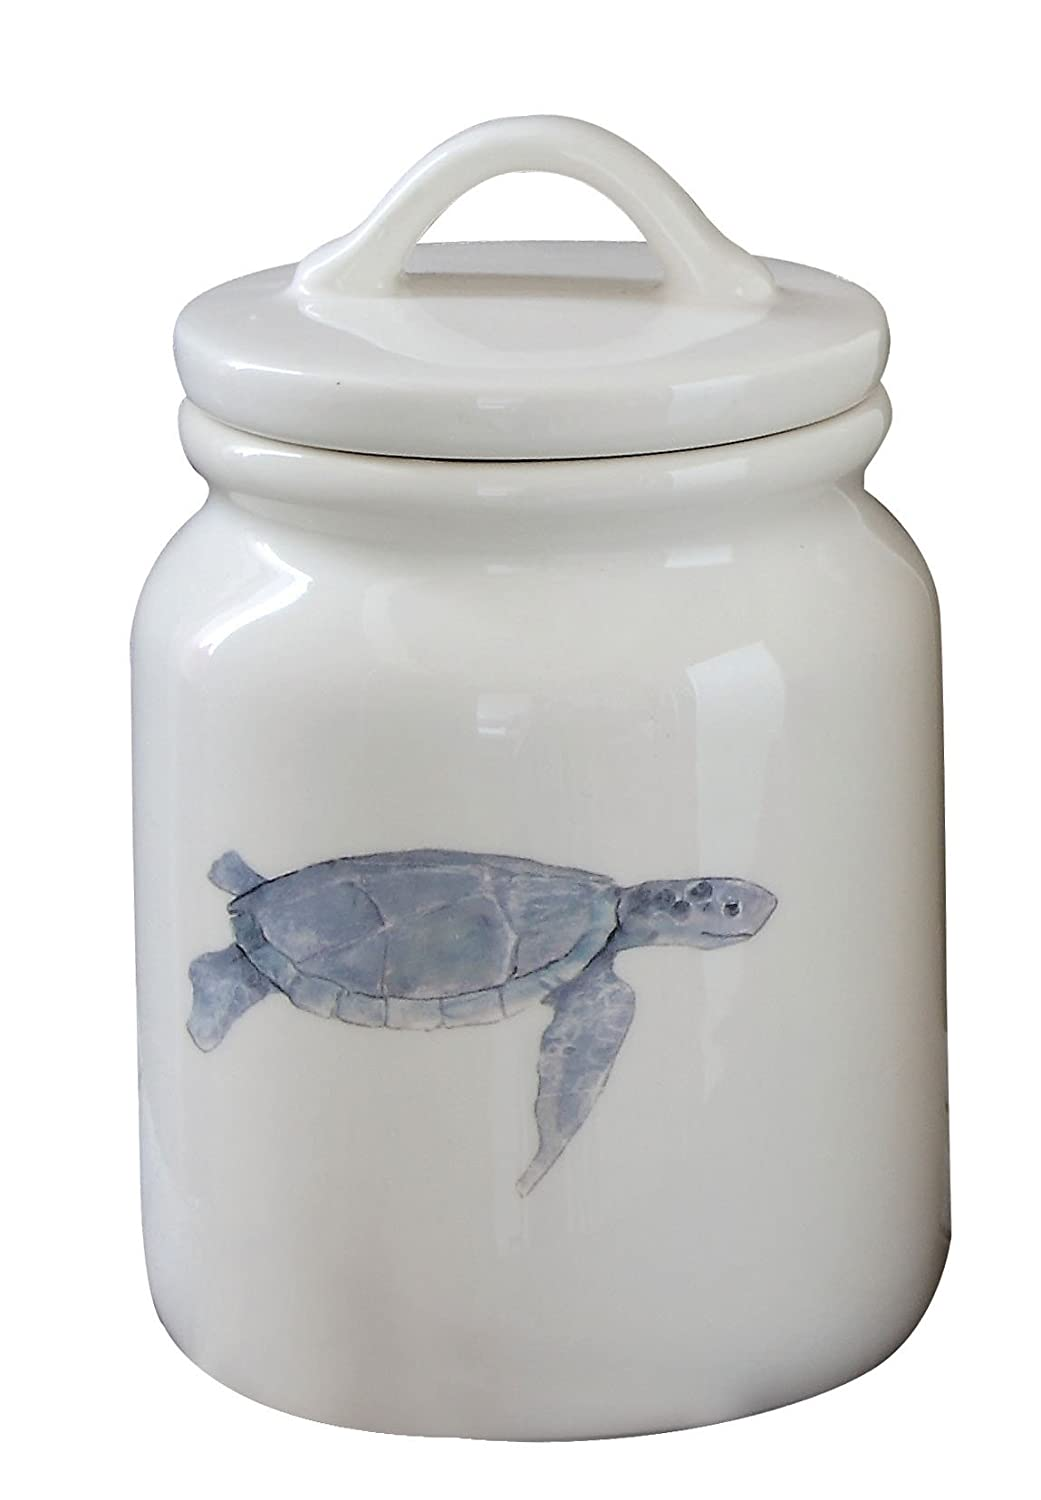 amazon com creative co op dolomite canister with sea turtle image amazon com creative co op dolomite canister with sea turtle image and lid 6 5 inch kitchen dining